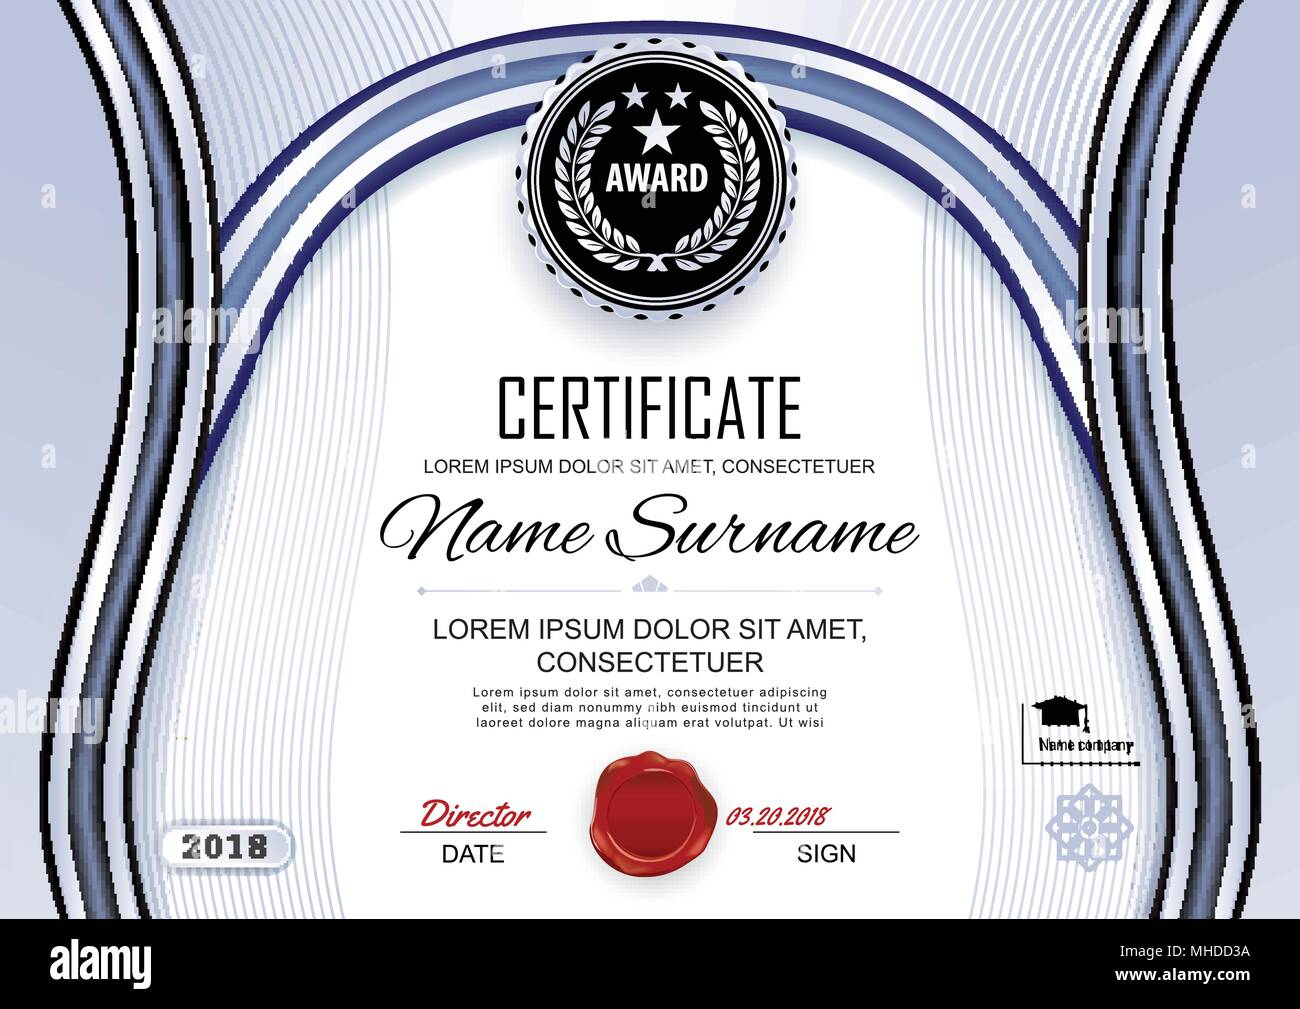 Official white certificate of appreciation award template with wave black and silver shapes and black badge, - Stock Image